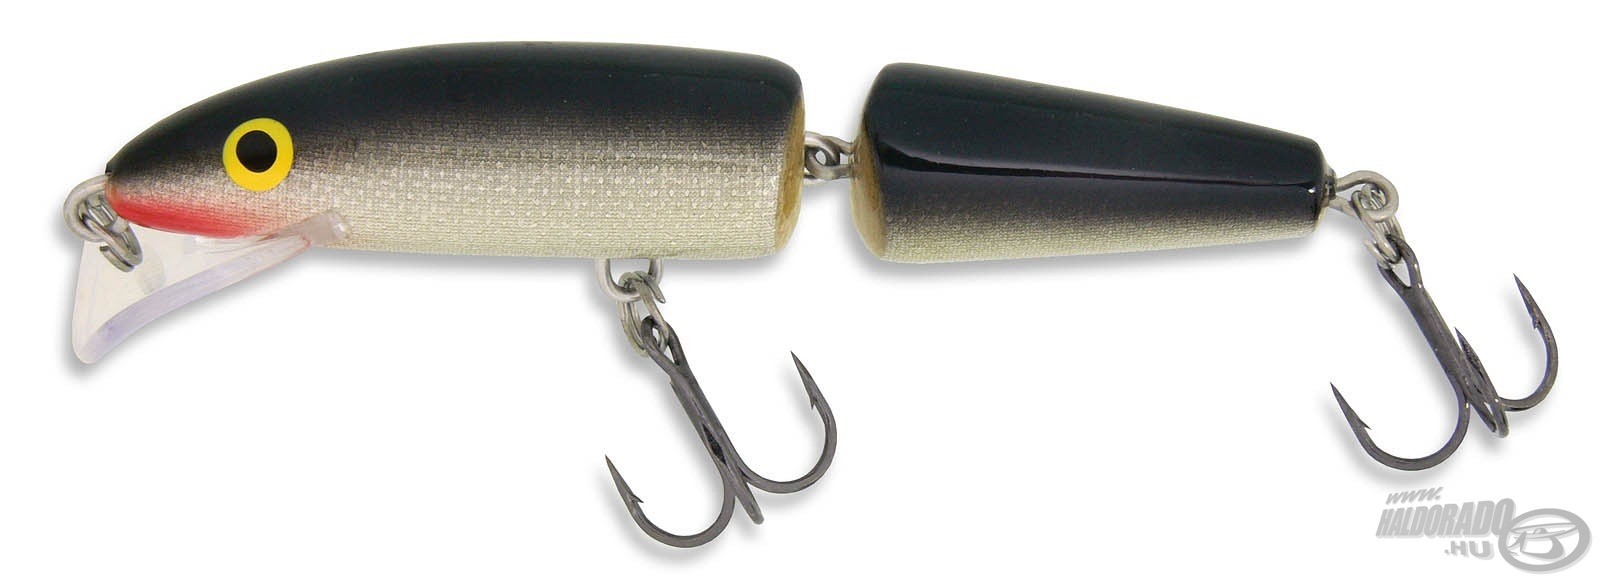 Rapala Scatter Rap Jointed SCRJ09 S 3990 helyett 2990Ft